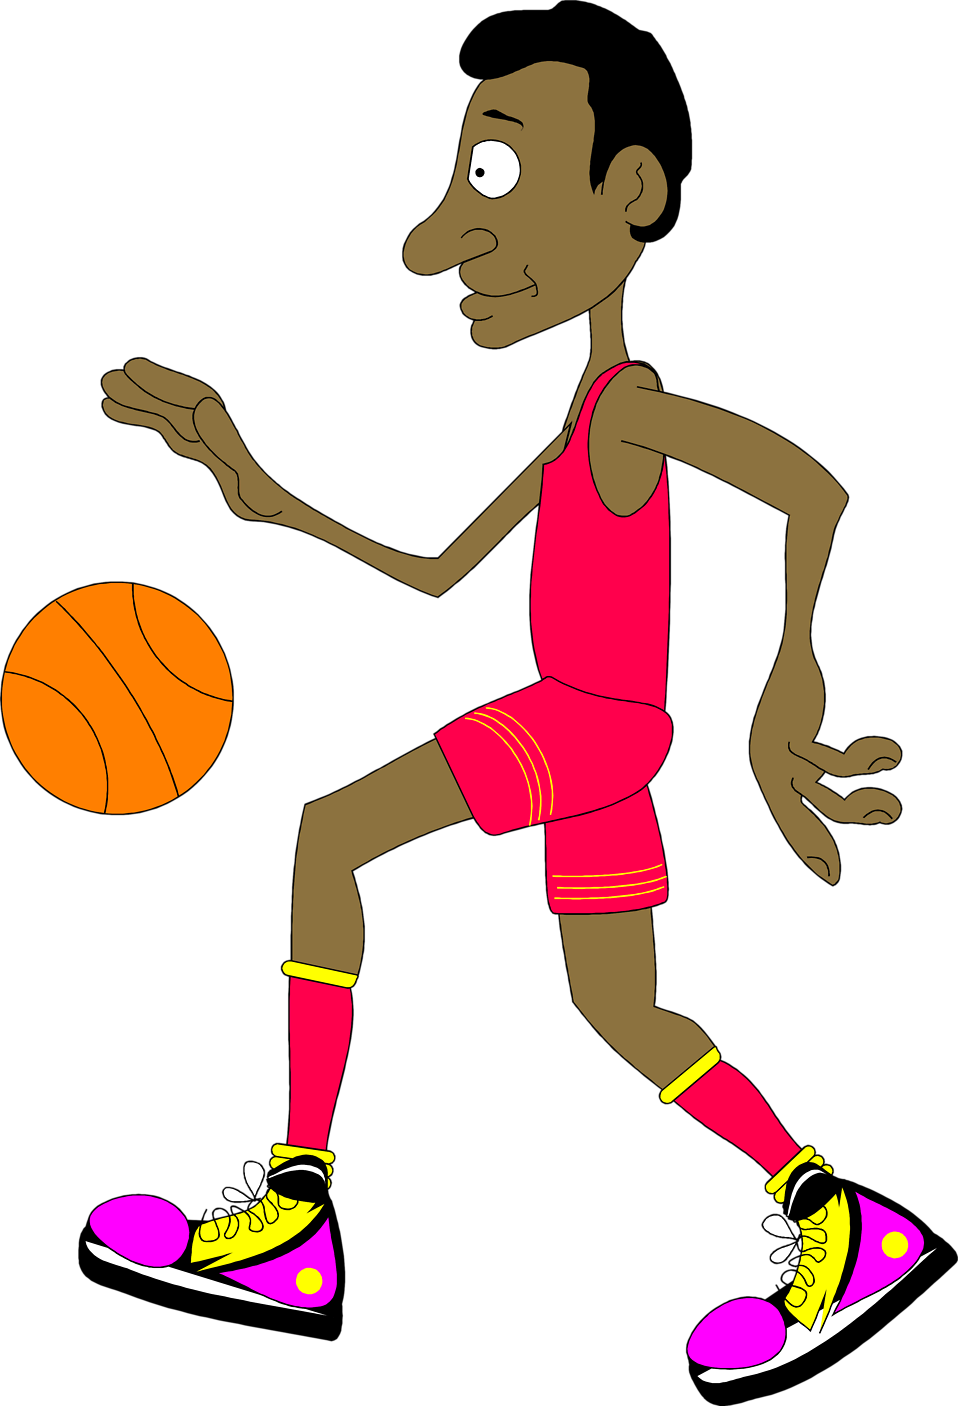 Basketball player dunking clipart clip art royalty free Basketball | Free Stock Photo | Illustration of a basketball player ... clip art royalty free